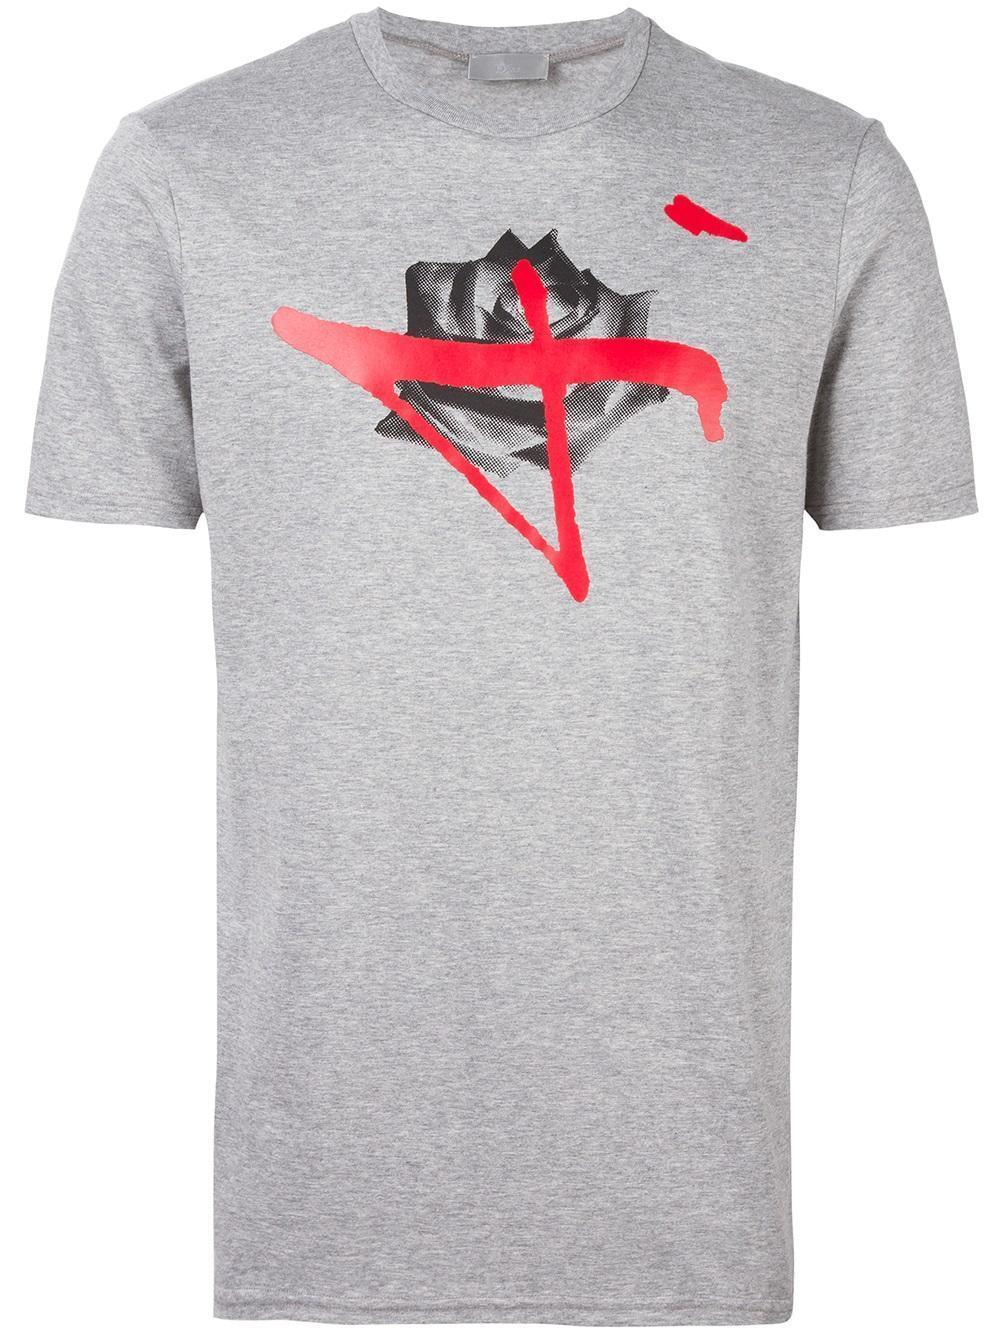 """【DIOR HOMME】16AW新作★""""Within me""""プリントTシャツ関税込"""